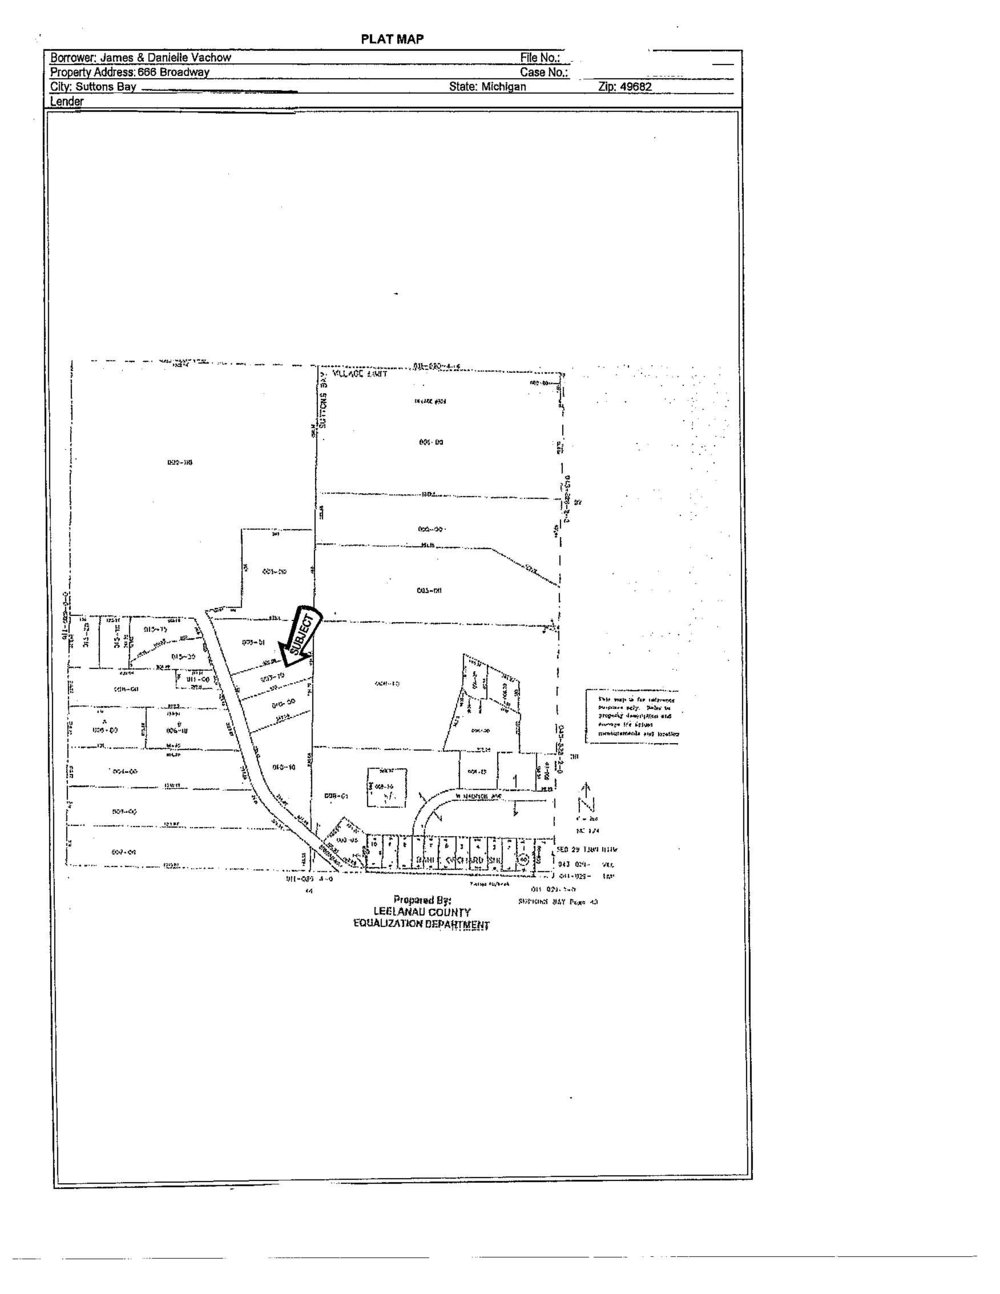 666 W Broadway, Suttons Bay – FOR SALE by Oltersdorf Realty, Leelanau County Real Estate - Marketing Packet (10).jpg